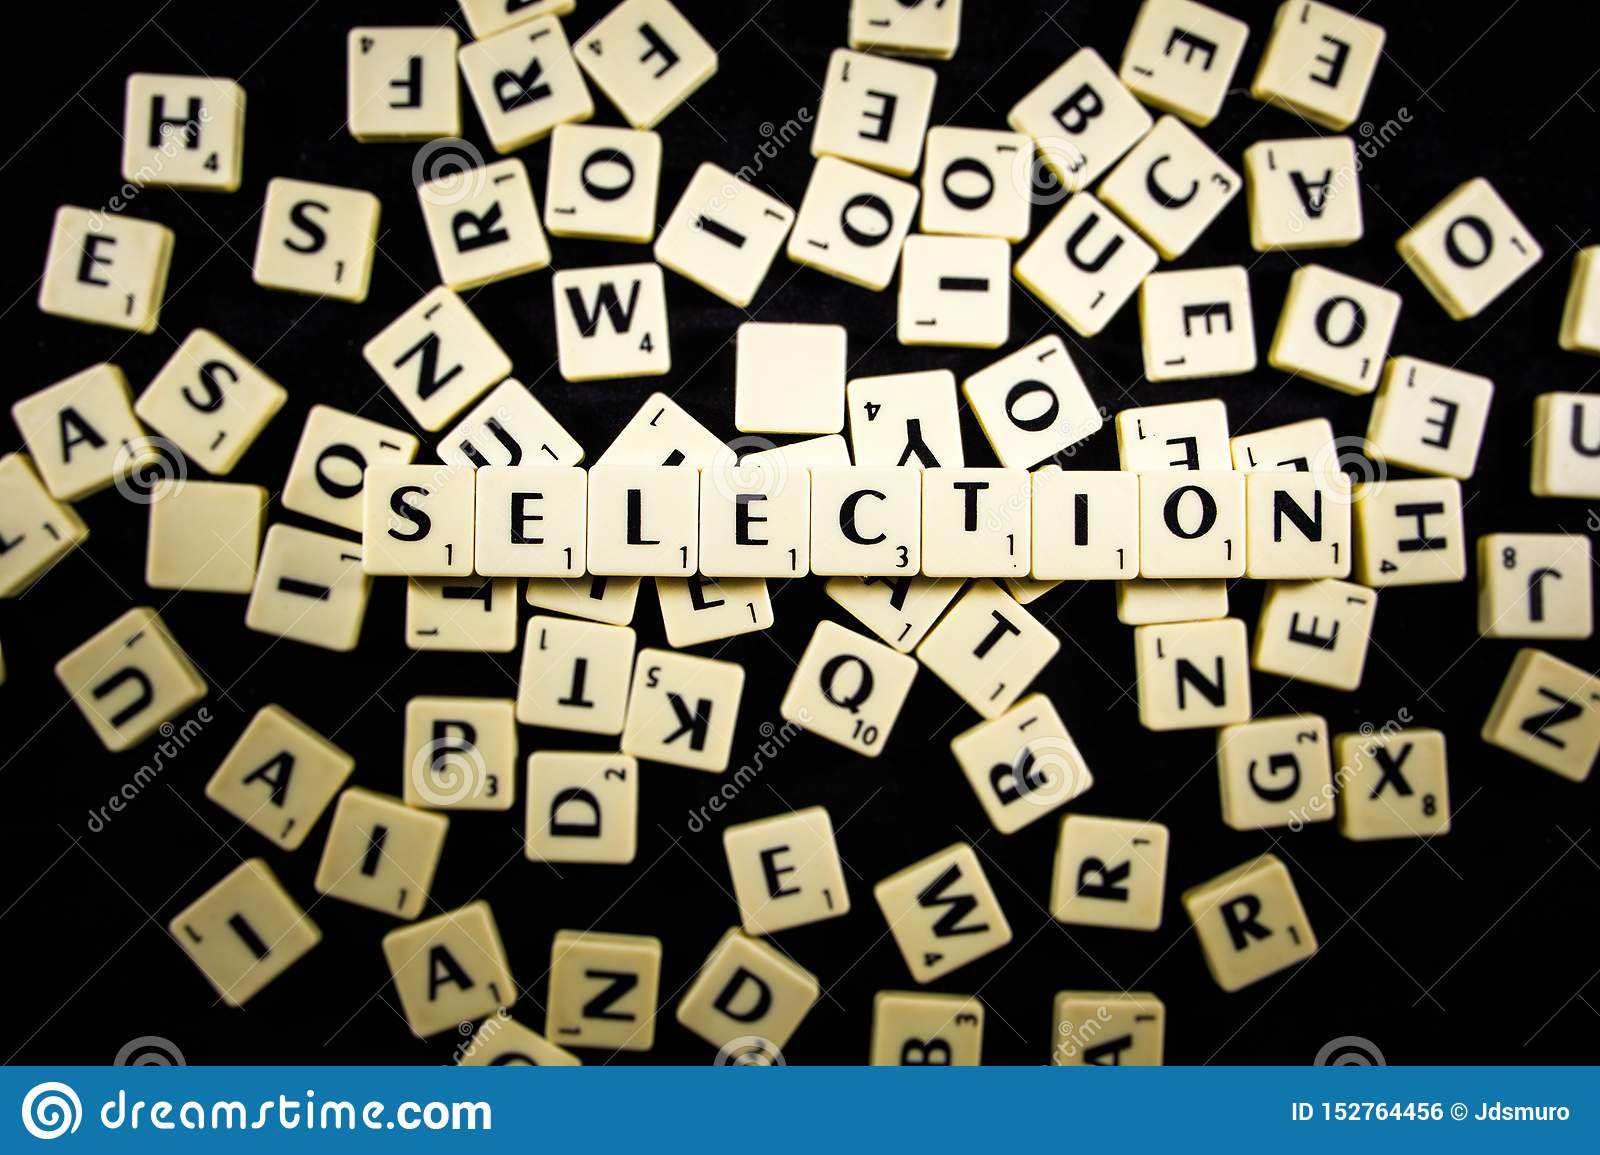 Selection word spelled with letter tiles in black background